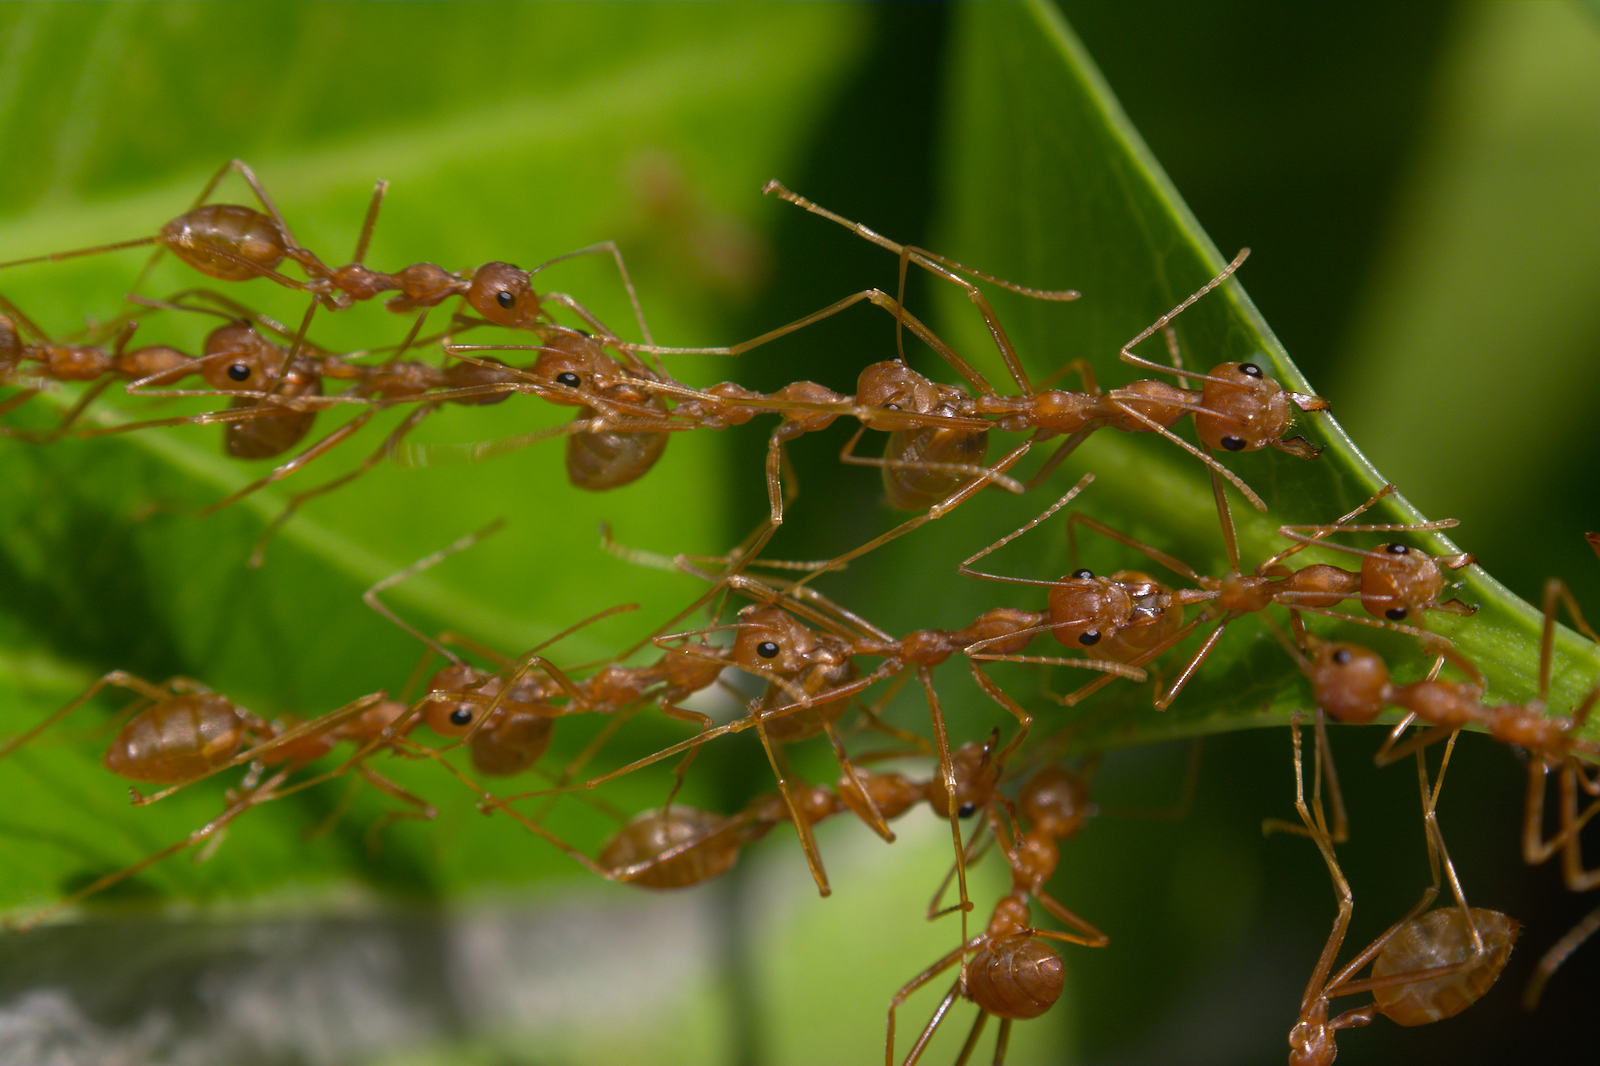 Image: a chain of weaver ants bridges two leaves